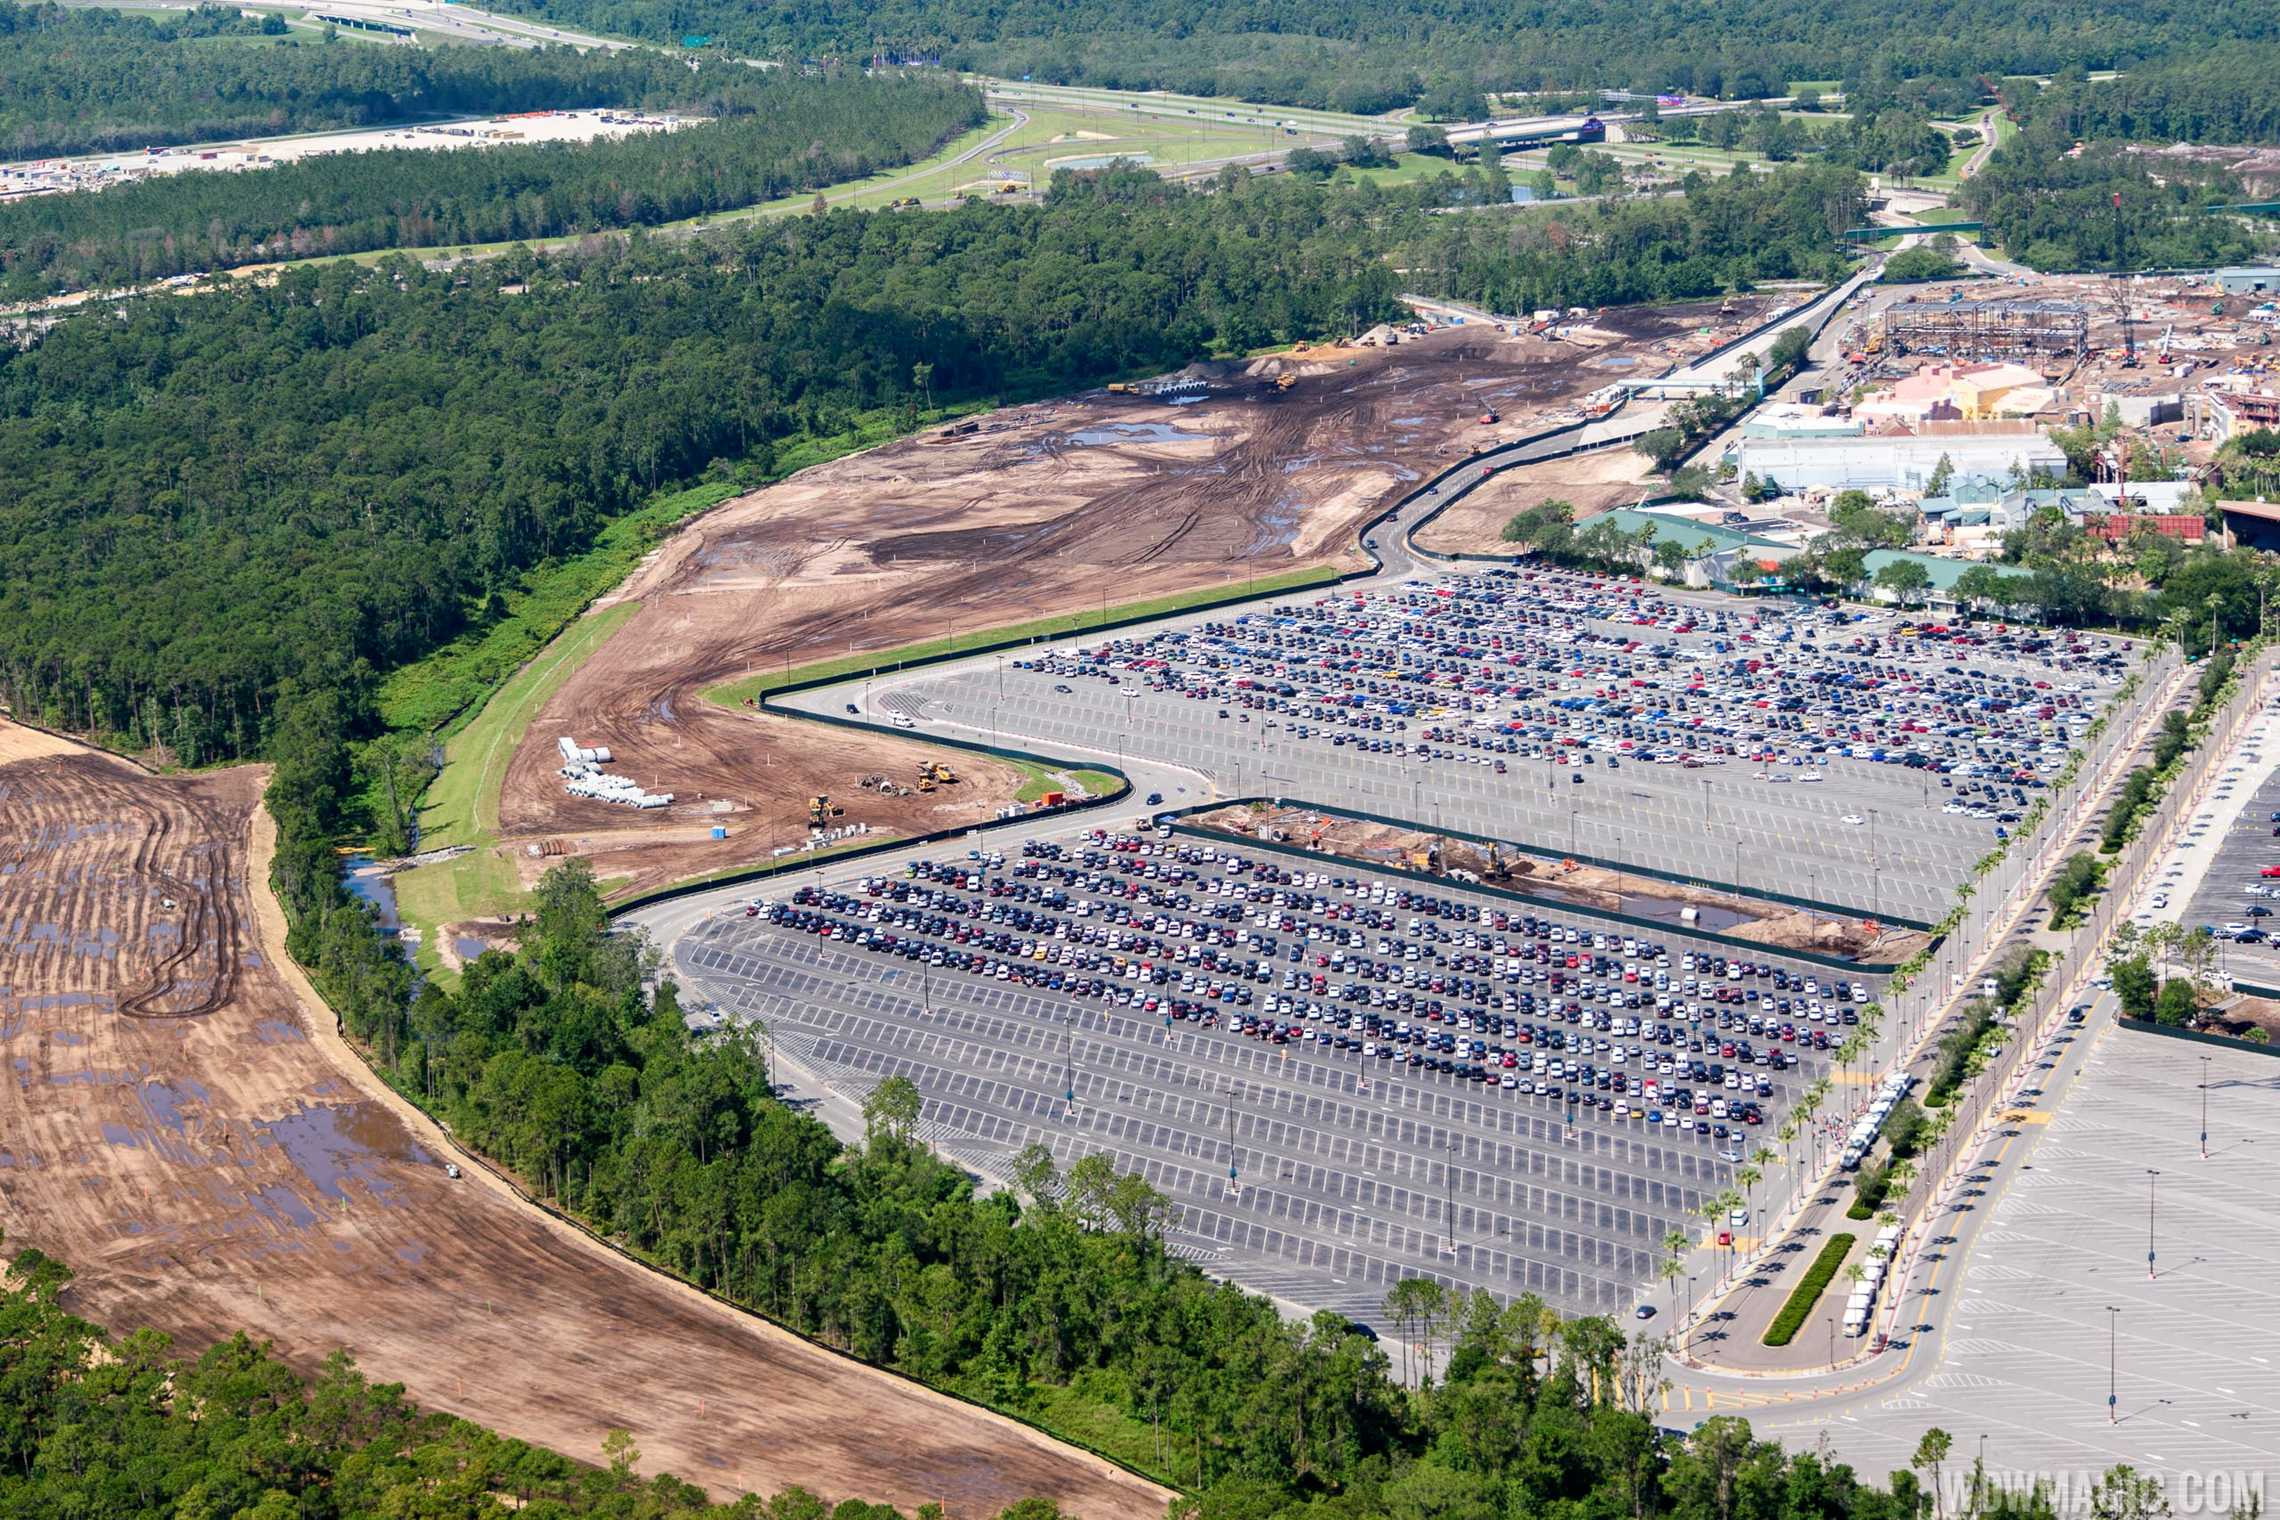 Parking lot expansion and new entry road at Disney's Hollywood Studios